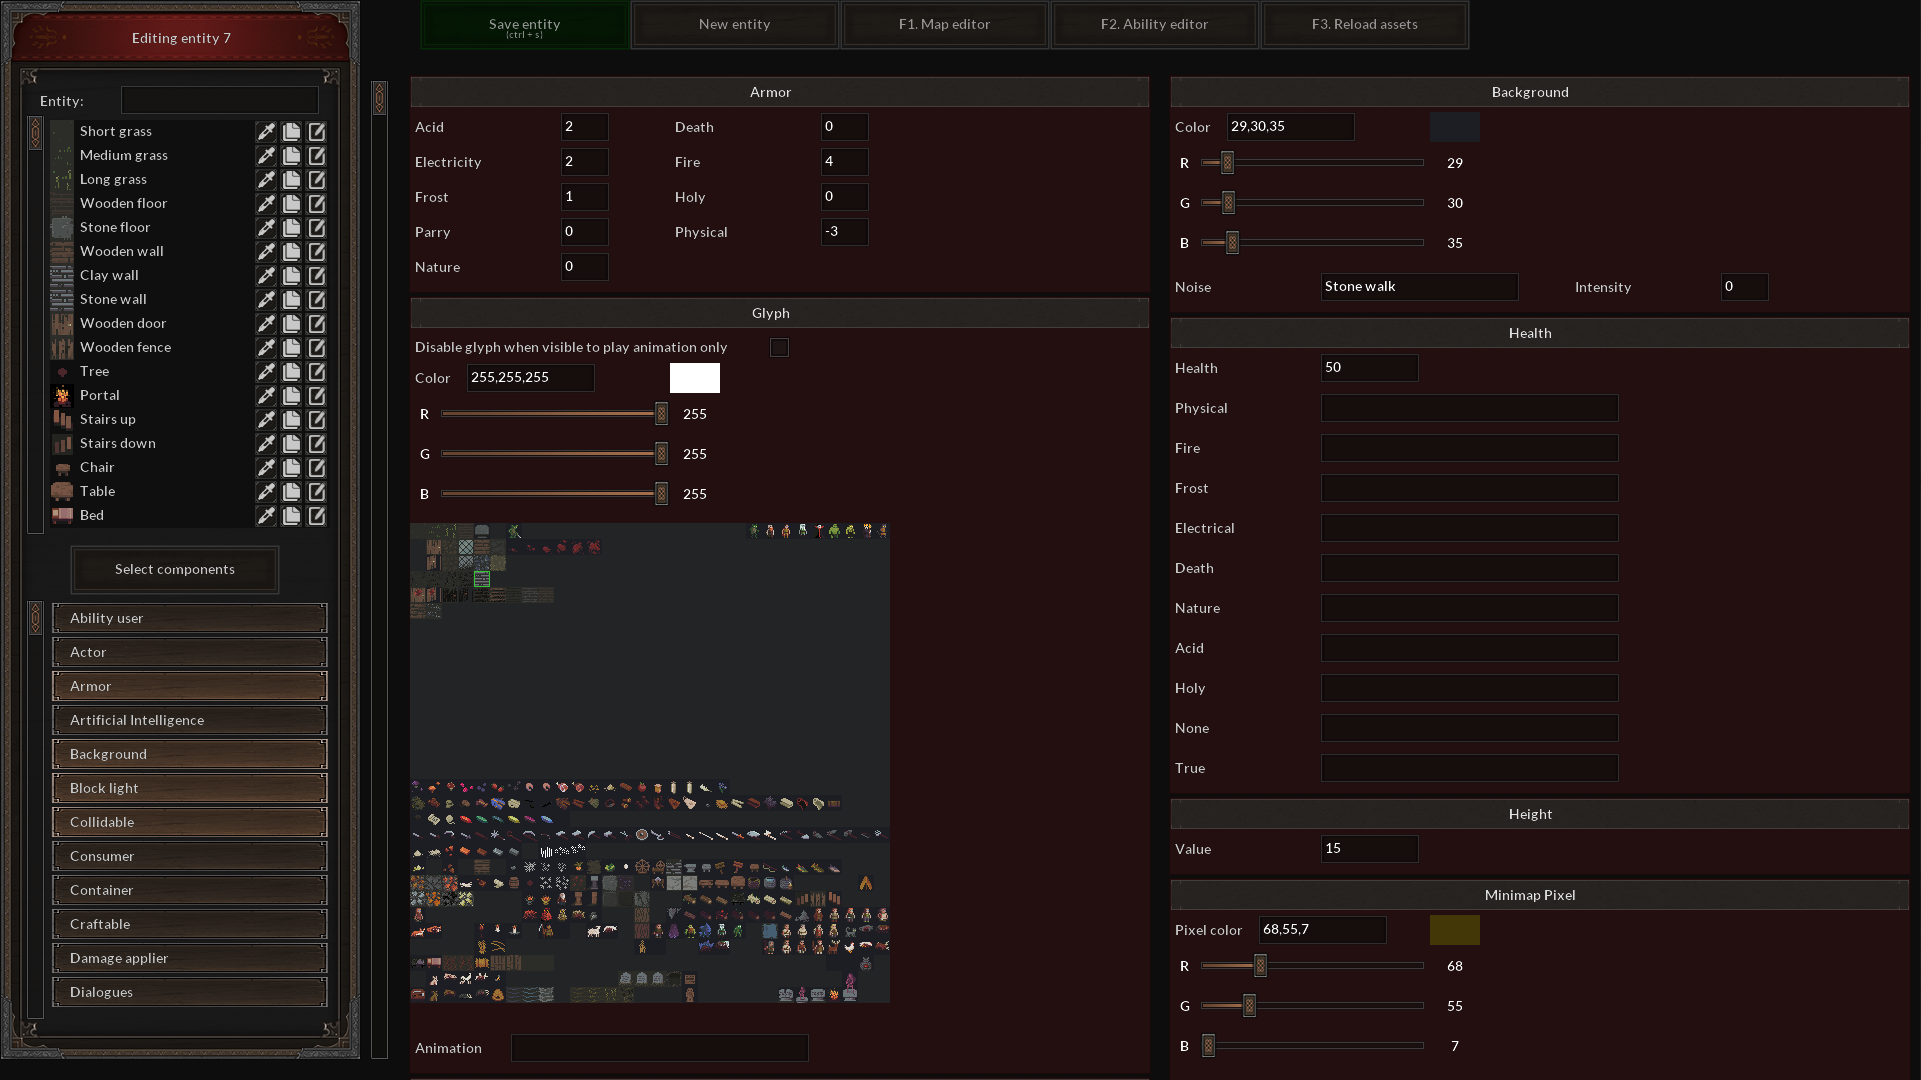 Entity editor allows to quickly create new entities for the game